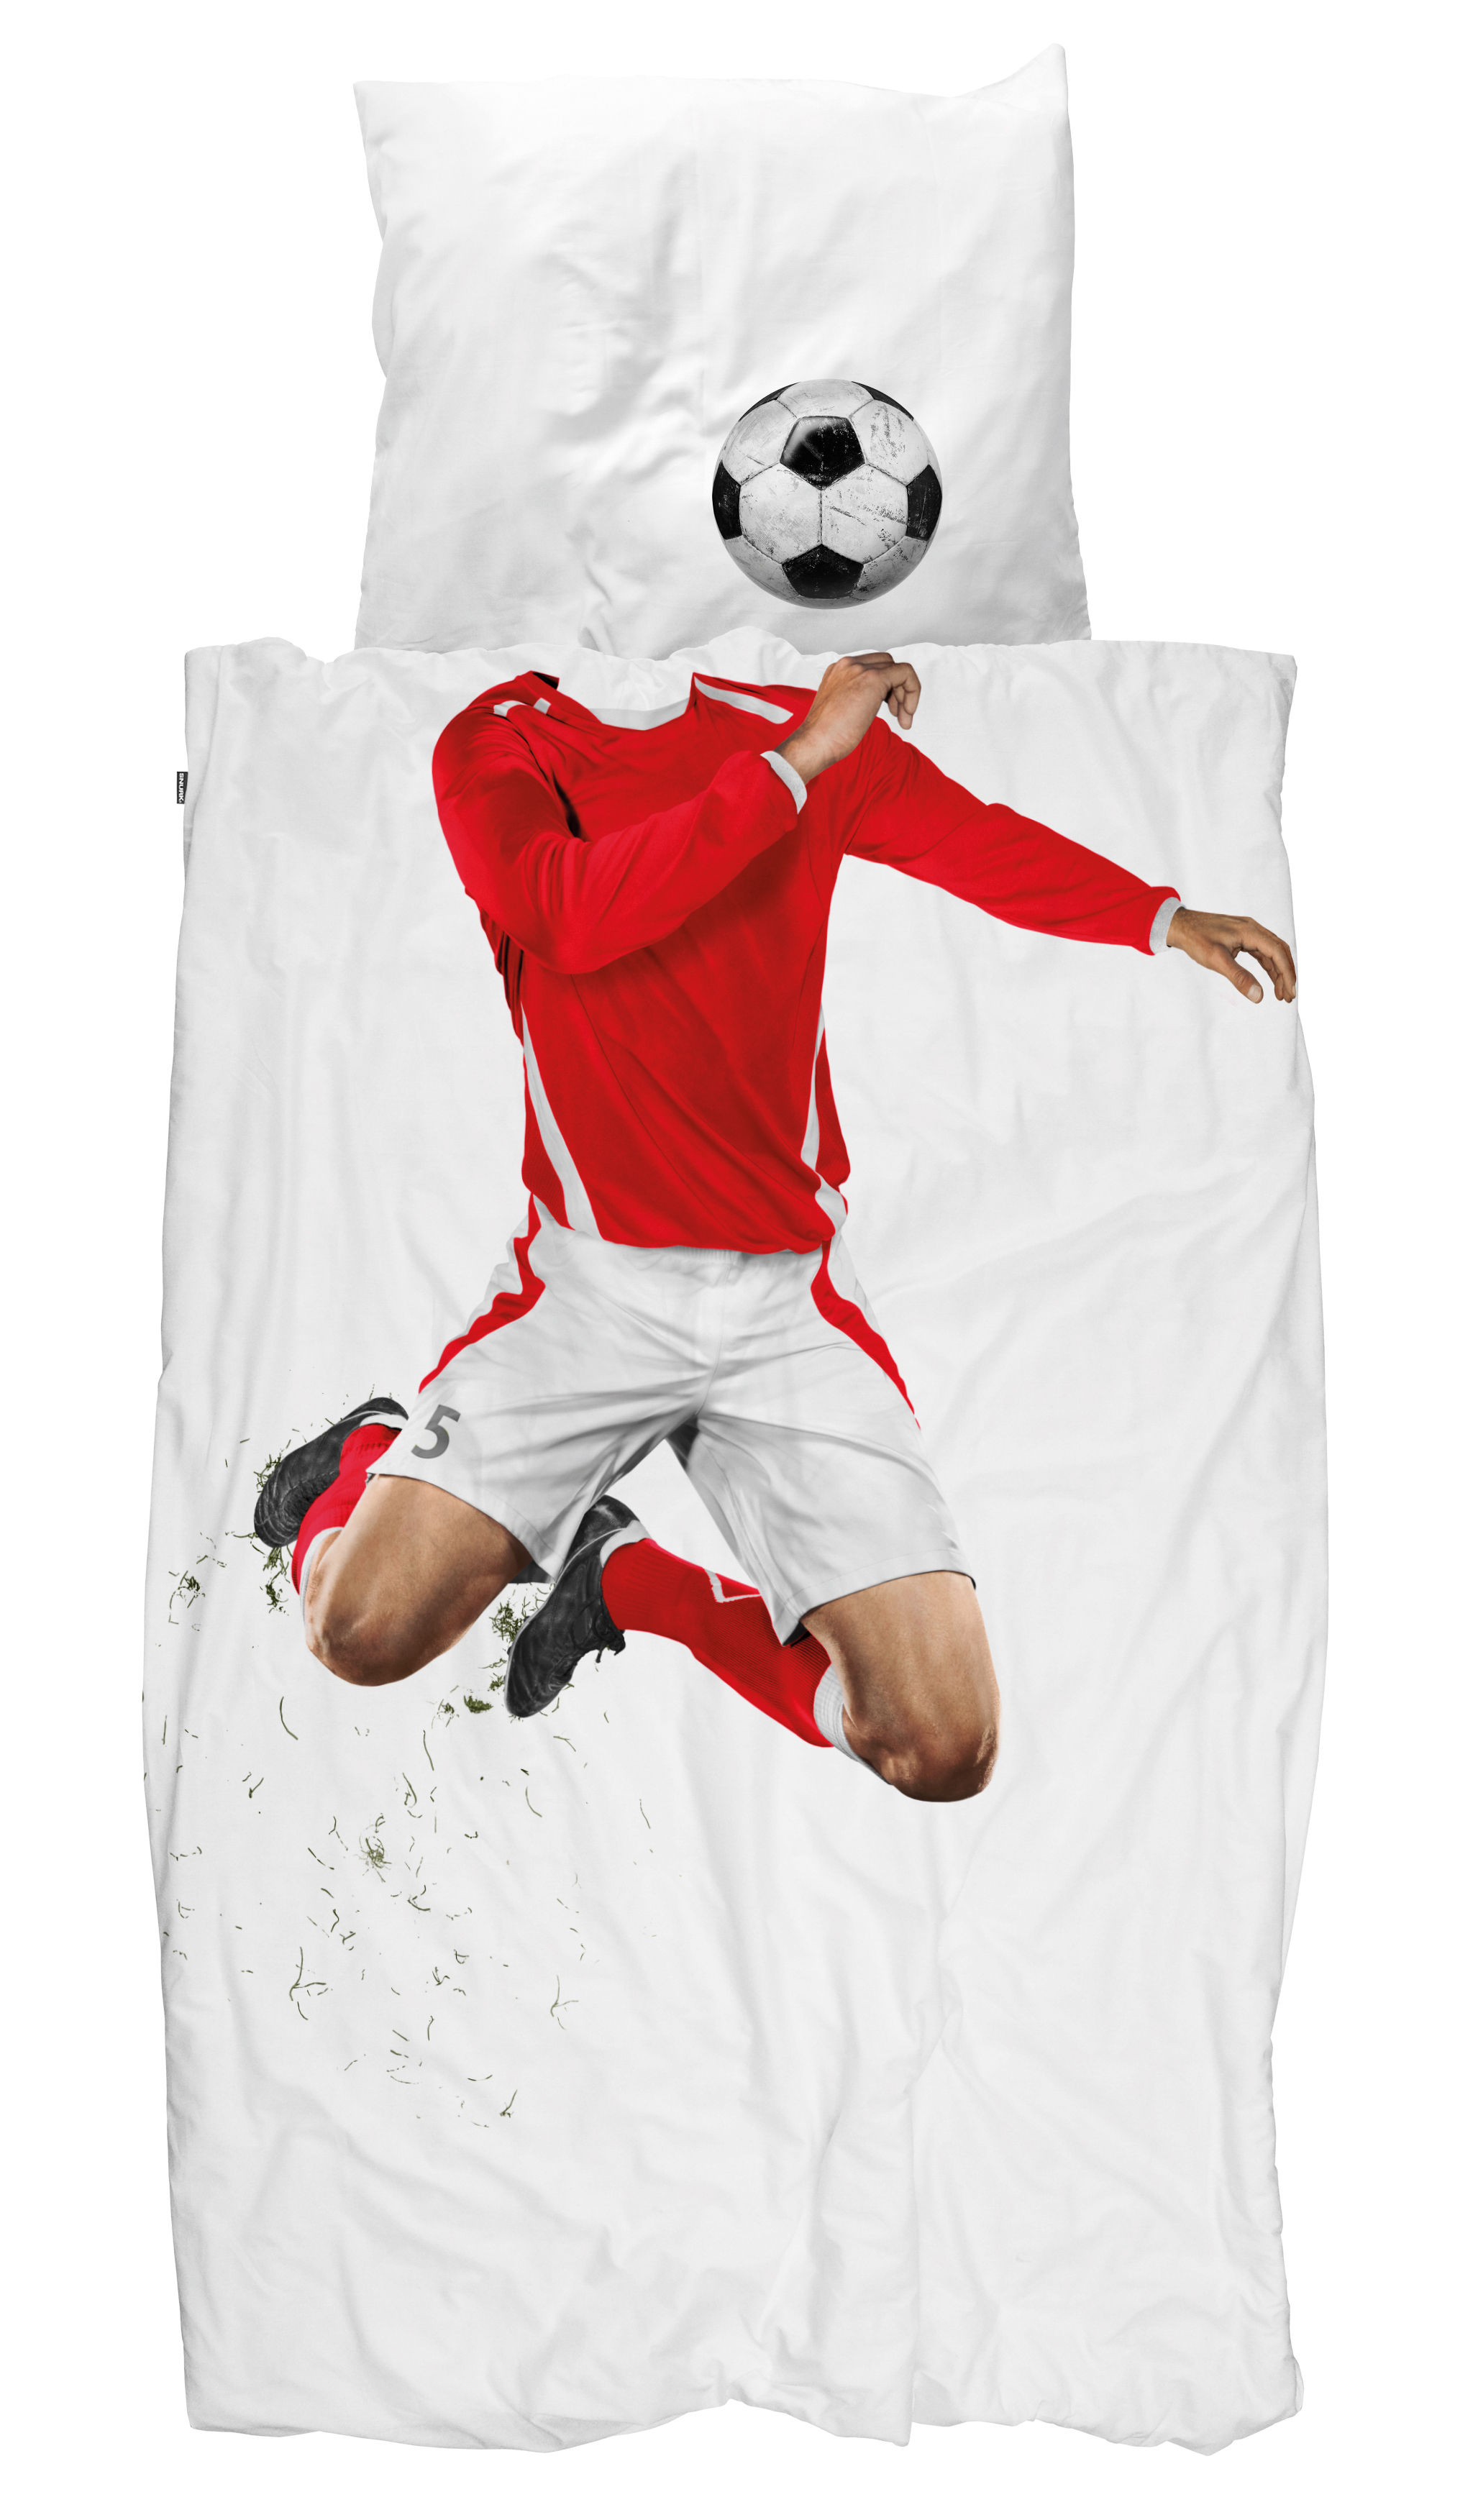 Decoration - Bedding & Bath Towels - Soccer Champ Bedlinen set for 1 person - 135 x 200 cm by Snurk - Soccer - Cotton percale